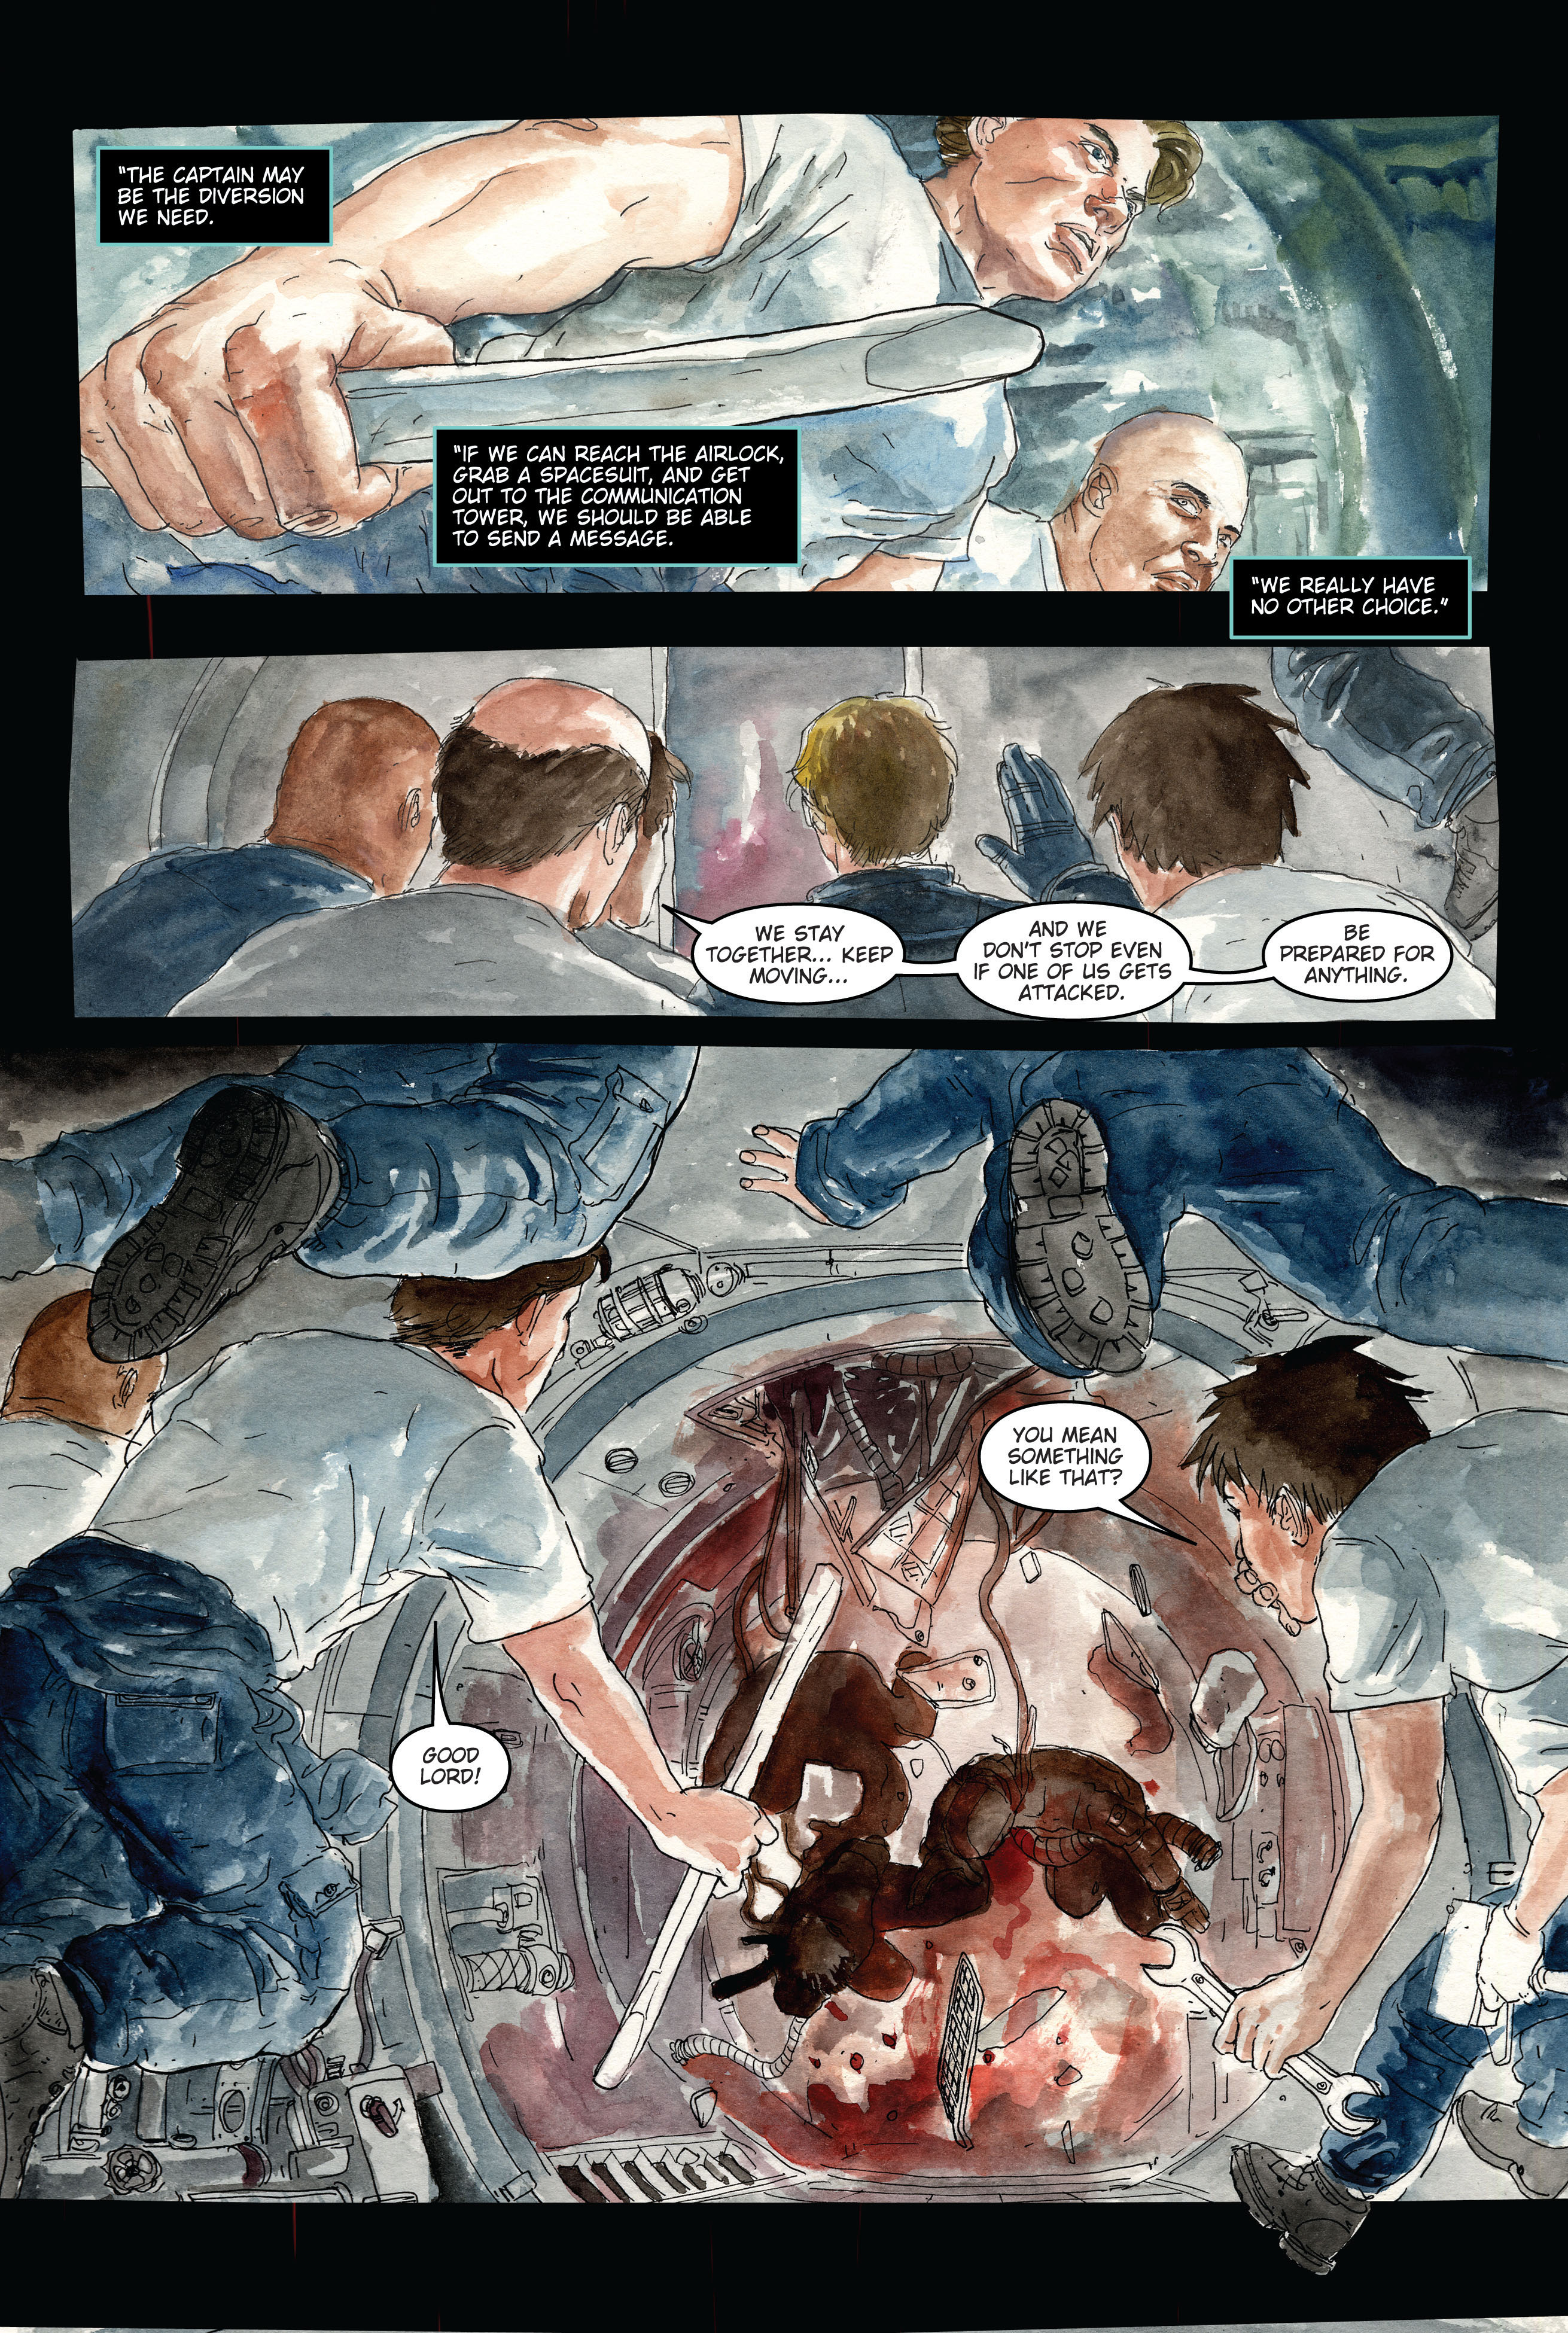 30 Days of Night: Dead Space 3 Page 5